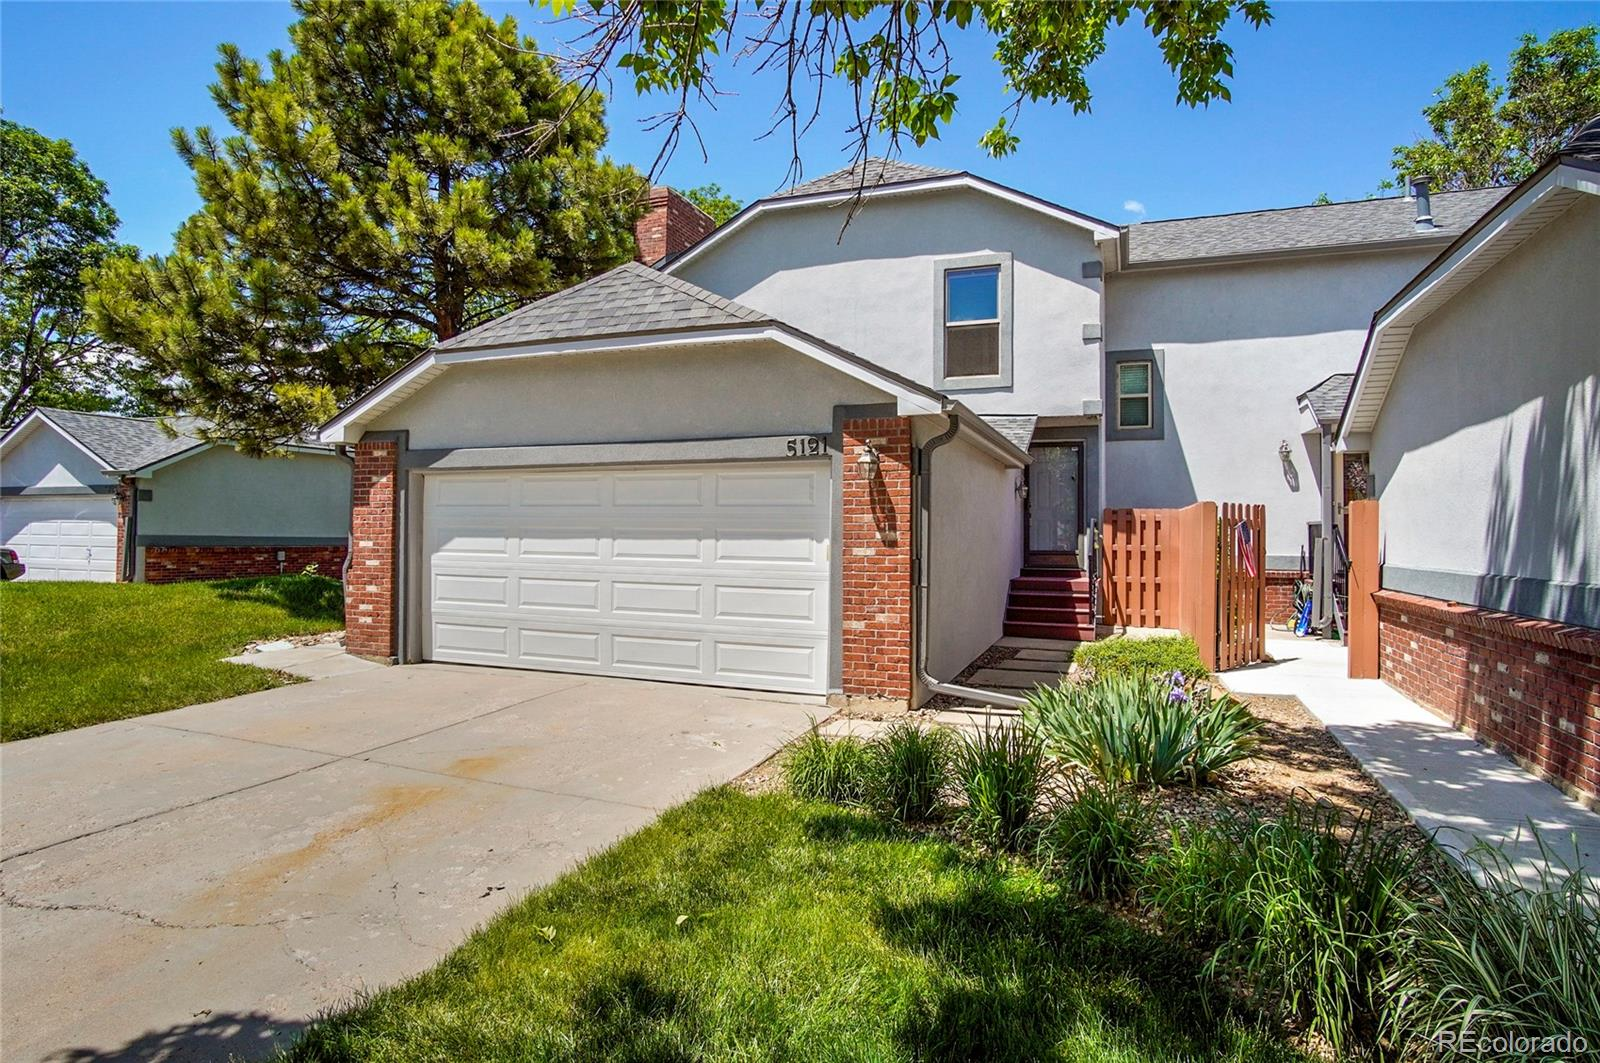 5121 S Emporia Way Property Photo - Greenwood Village, CO real estate listing